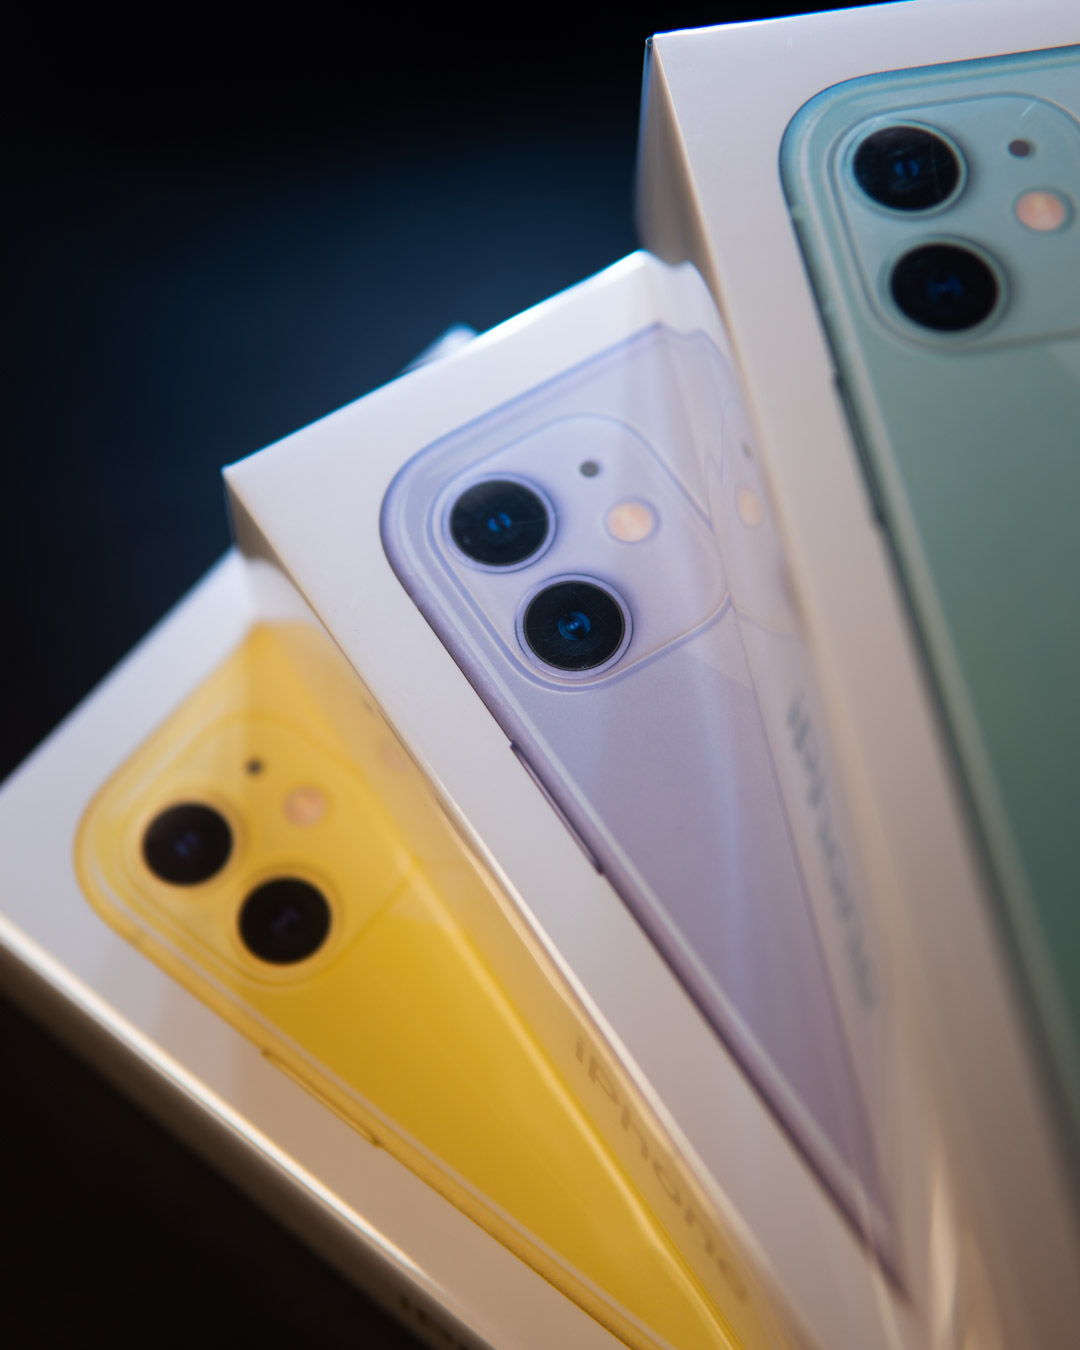 Black Friday Discounted iPhone 11 For Business Users - stacked yellow, purple and green iphone 11's